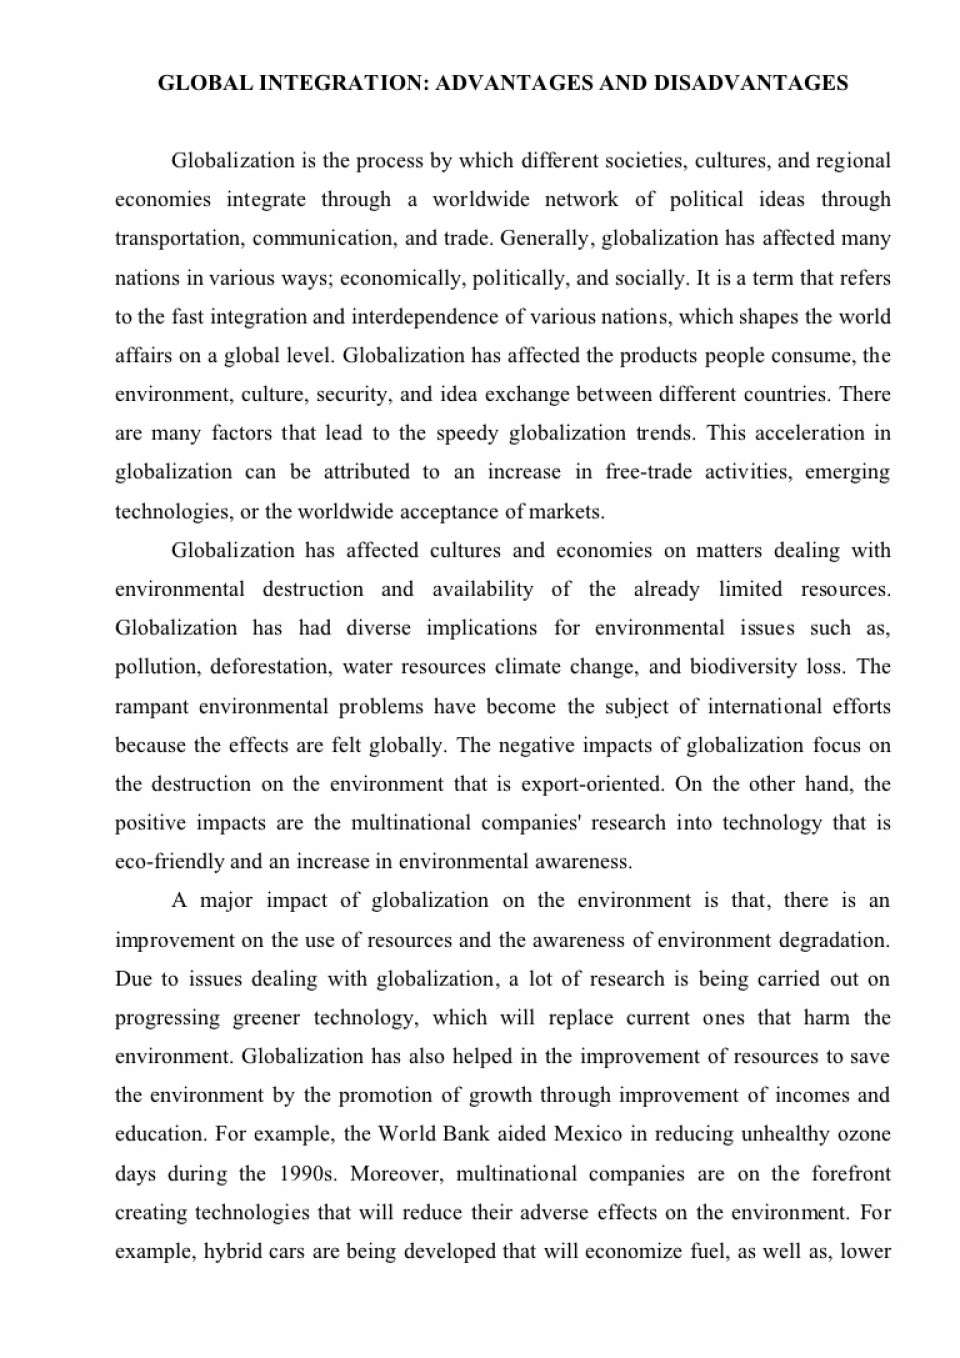 021 Essayglobalization Phpapp02 Thumbnail Essay Example Advantage And Disadvantage Of Shocking Science Advantages Disadvantages With Quotes In Marathi Tamil Language 960